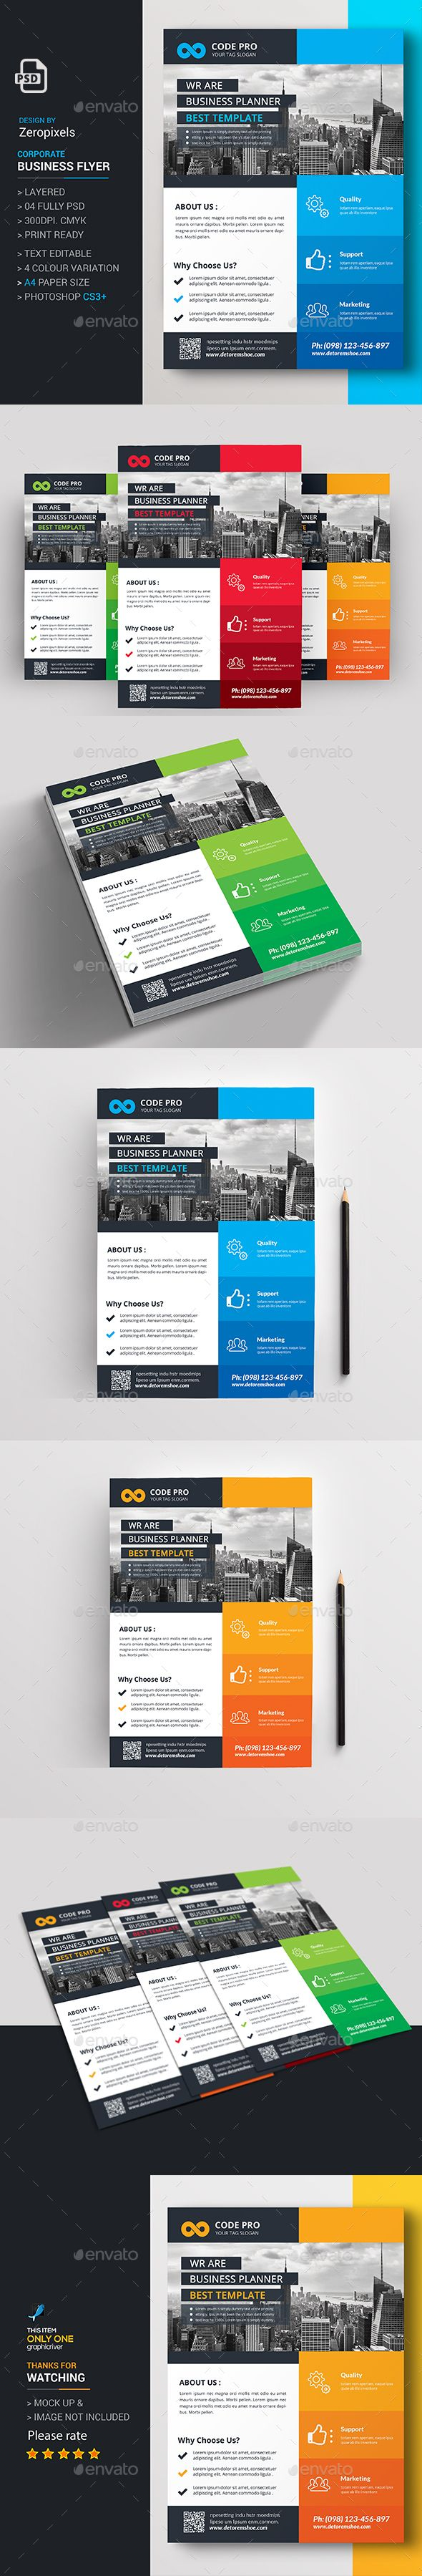 Corporate Business Flyer Design Template PSD. Download here: http://graphicriver.net/item/corporate-business-flyer/16386516?ref=ksioks